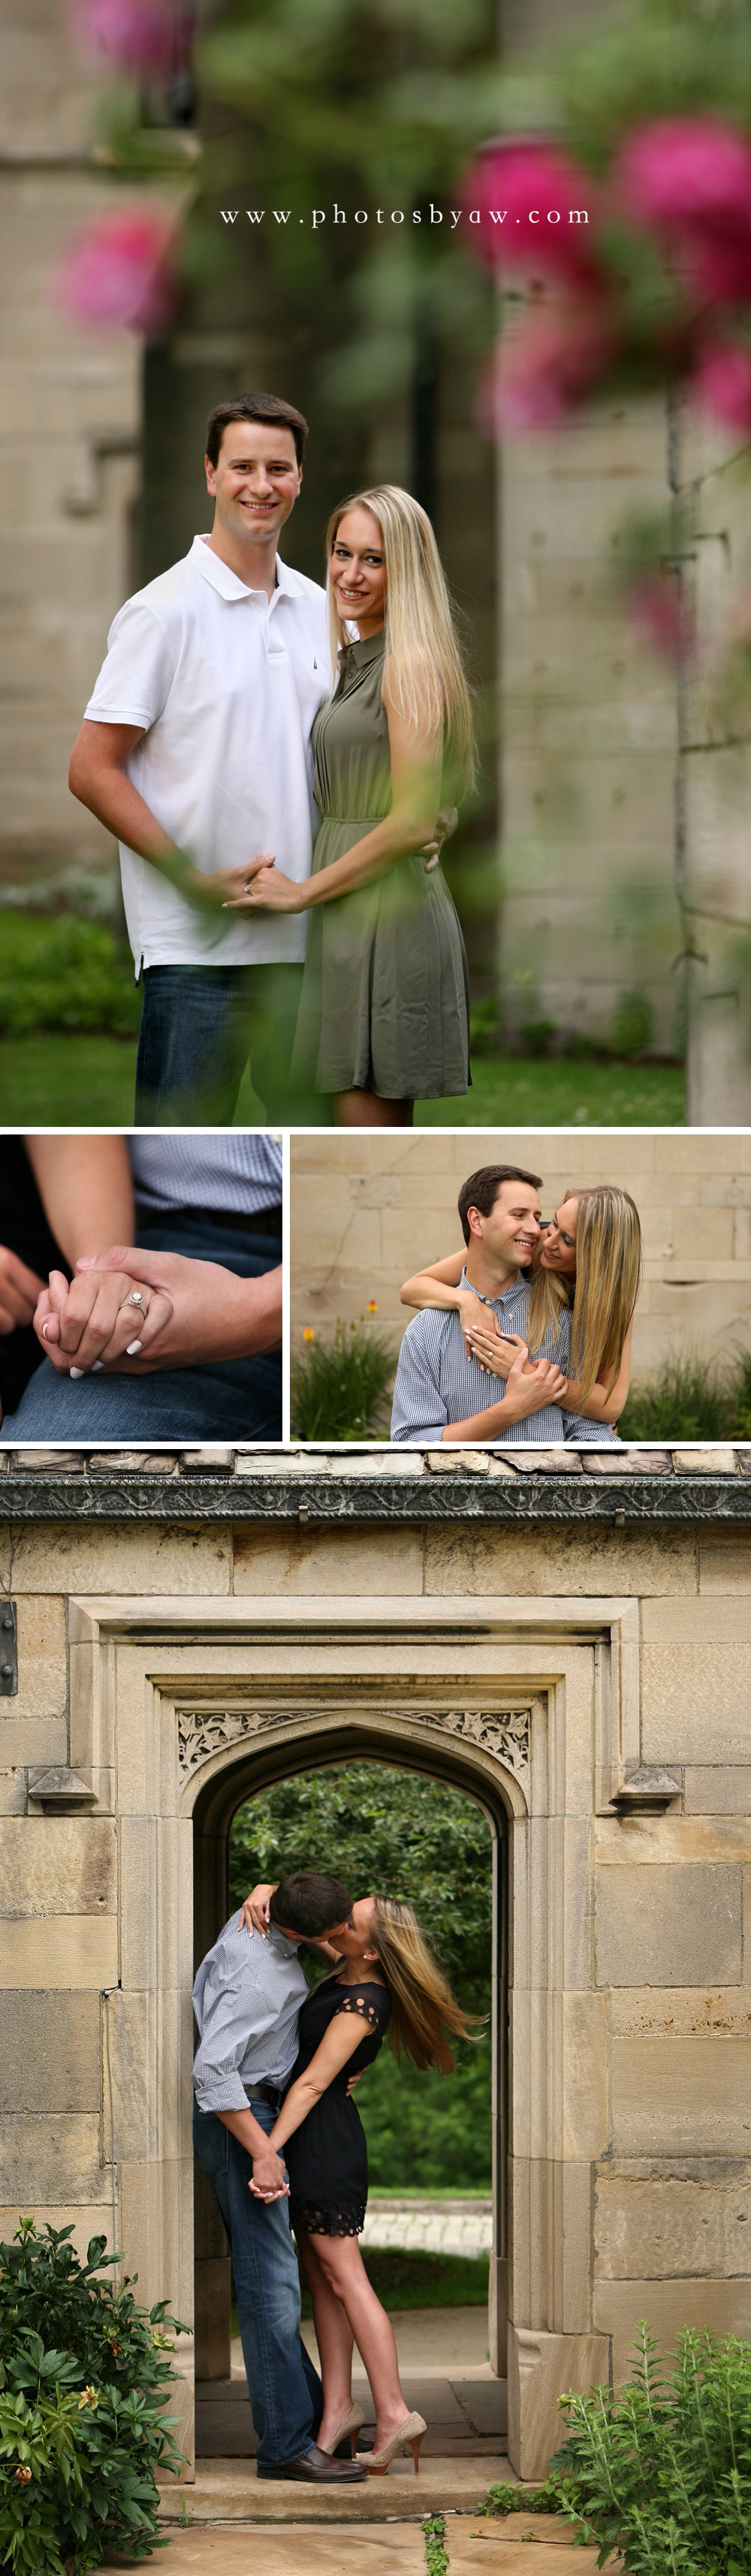 hartwood acres engagement